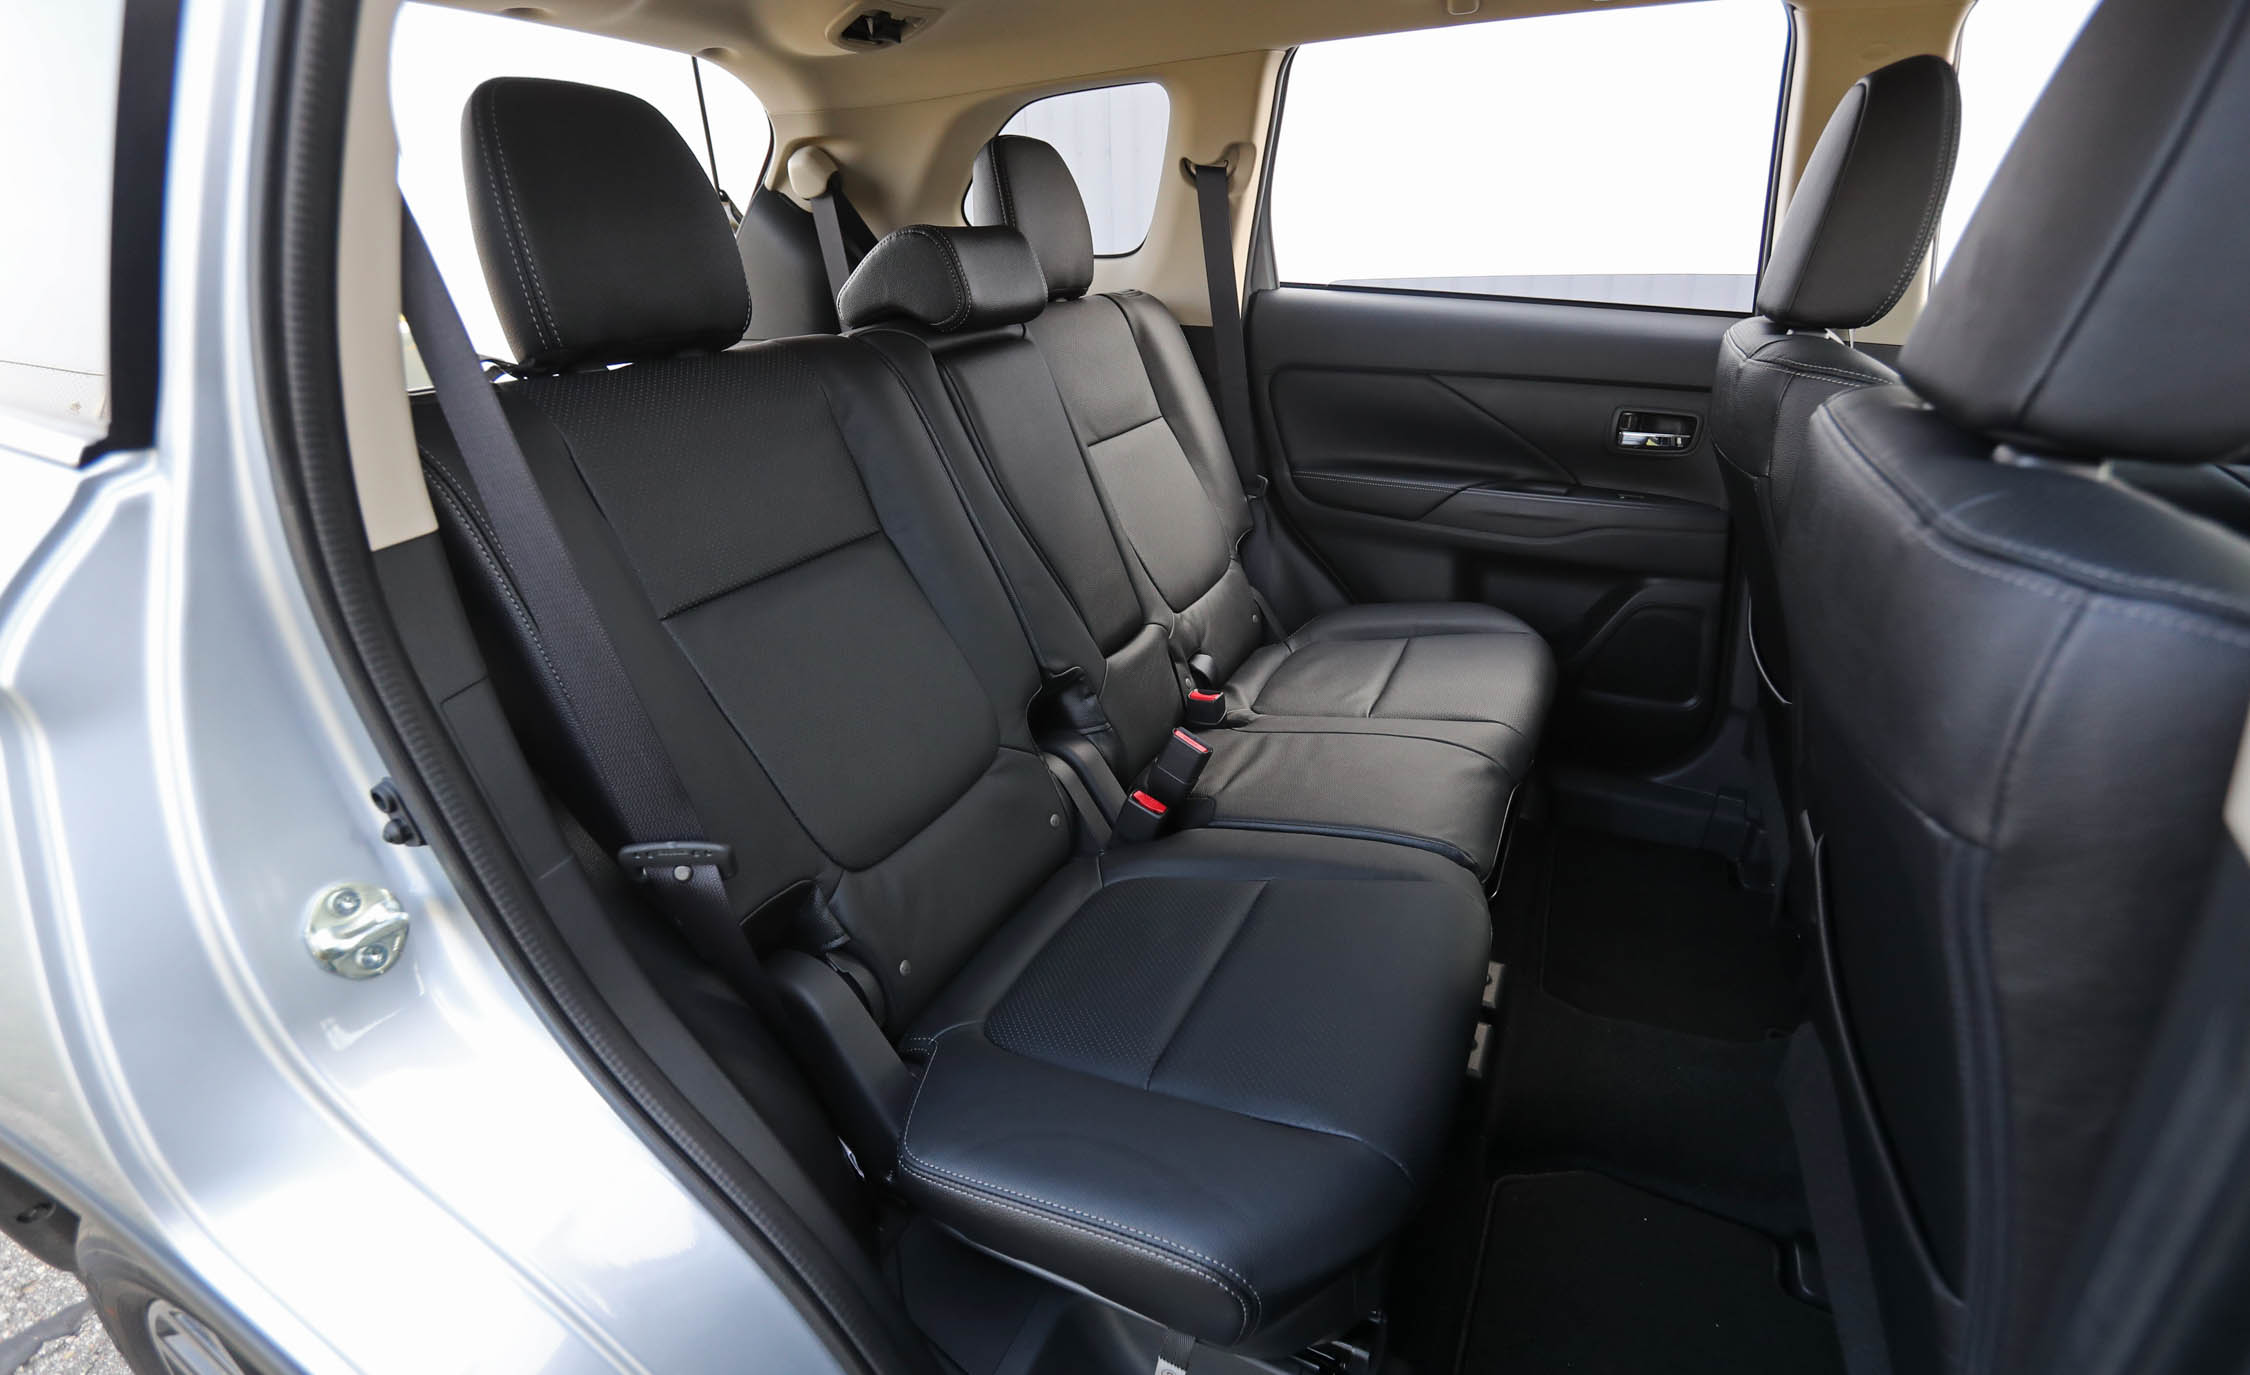 2017 Mitsubishi Outlander Gt Interior Seats Rear Back (Photo 17 of 34)